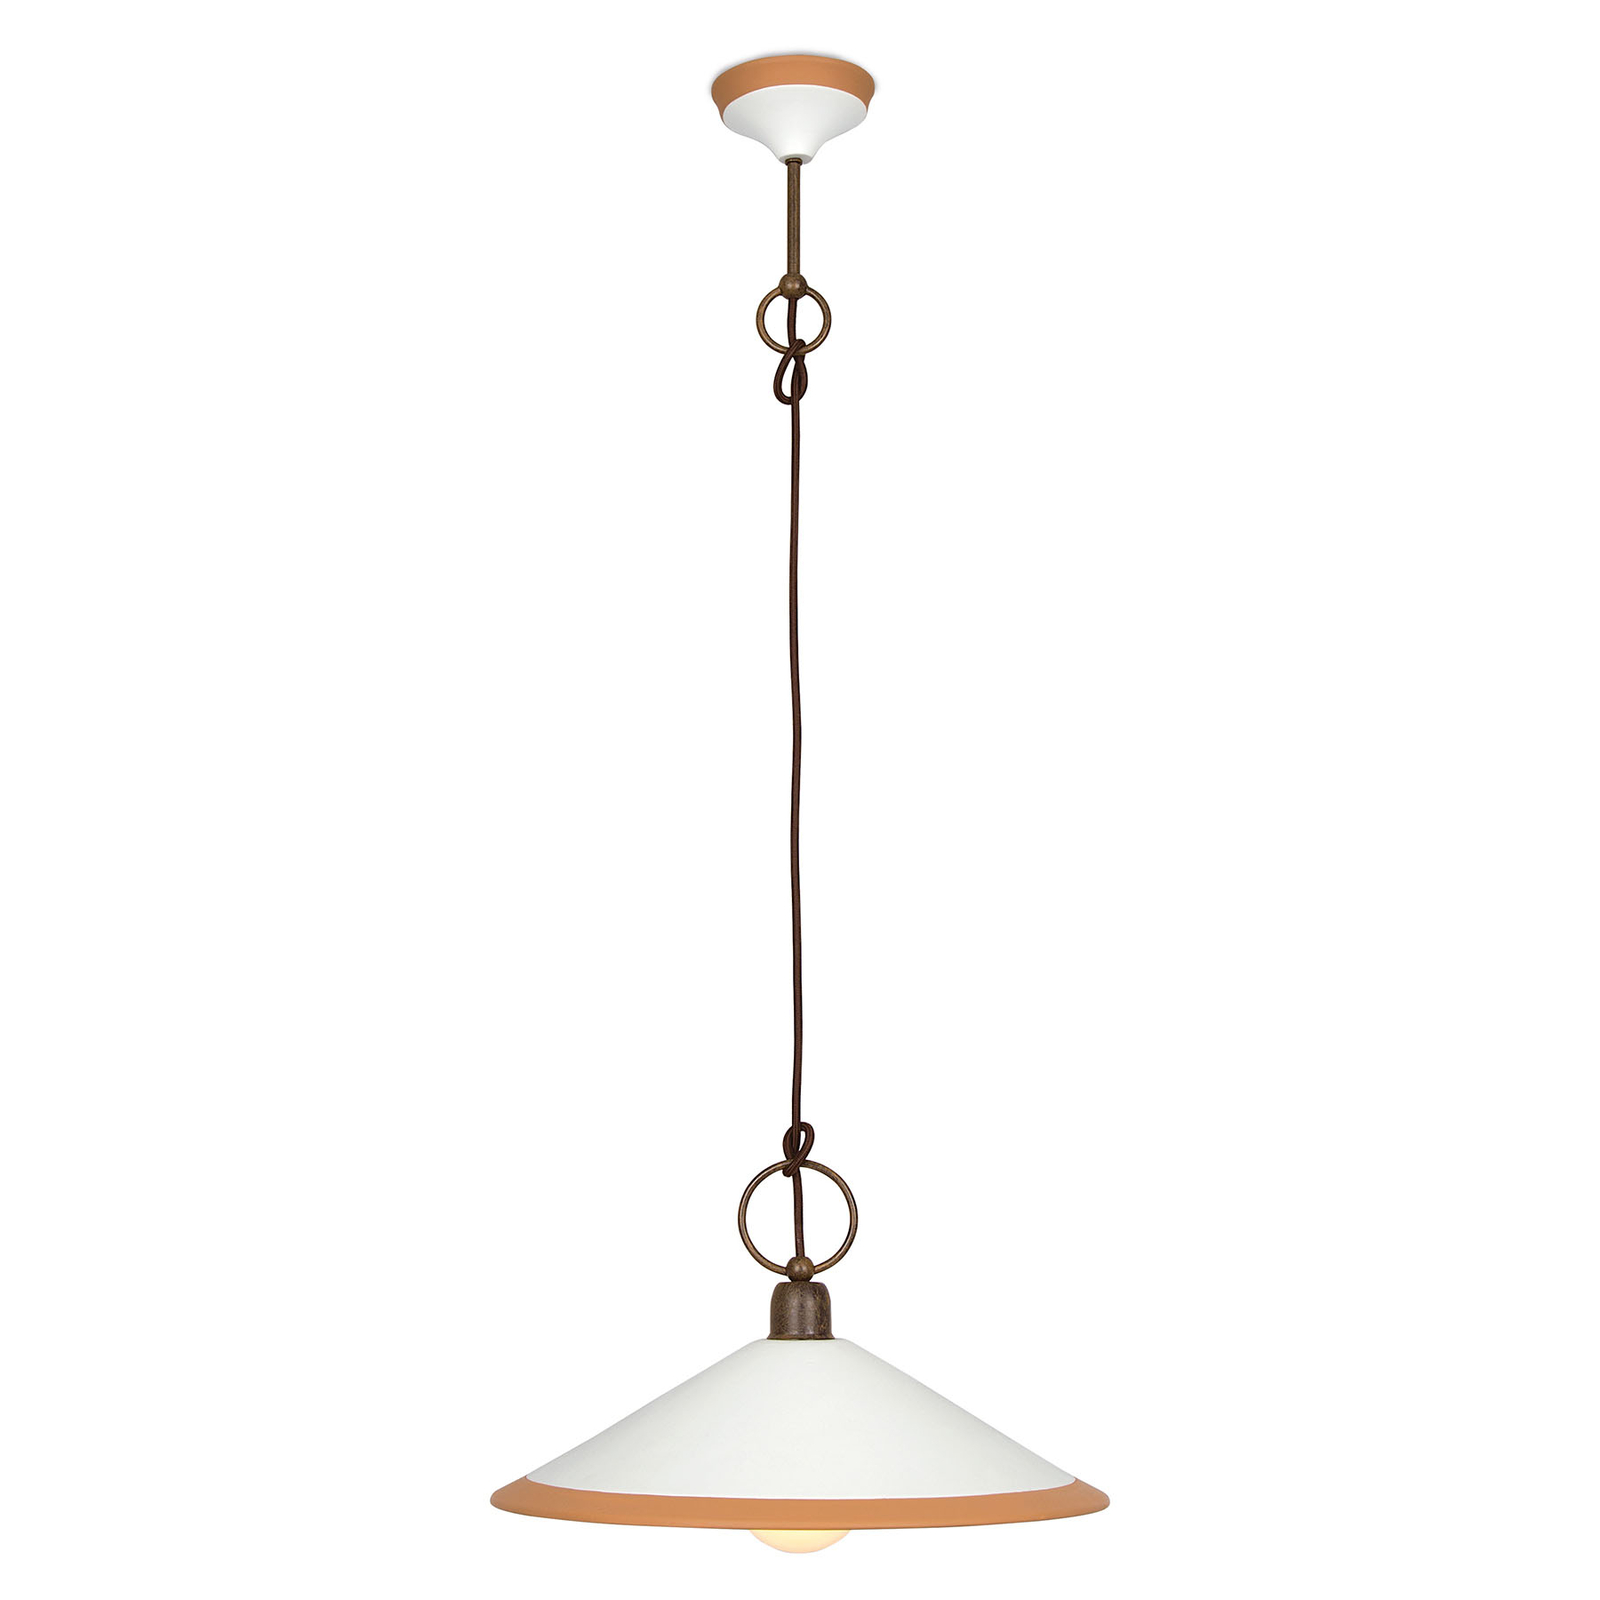 Suspension 4560/S41, brune, blanche, ocre